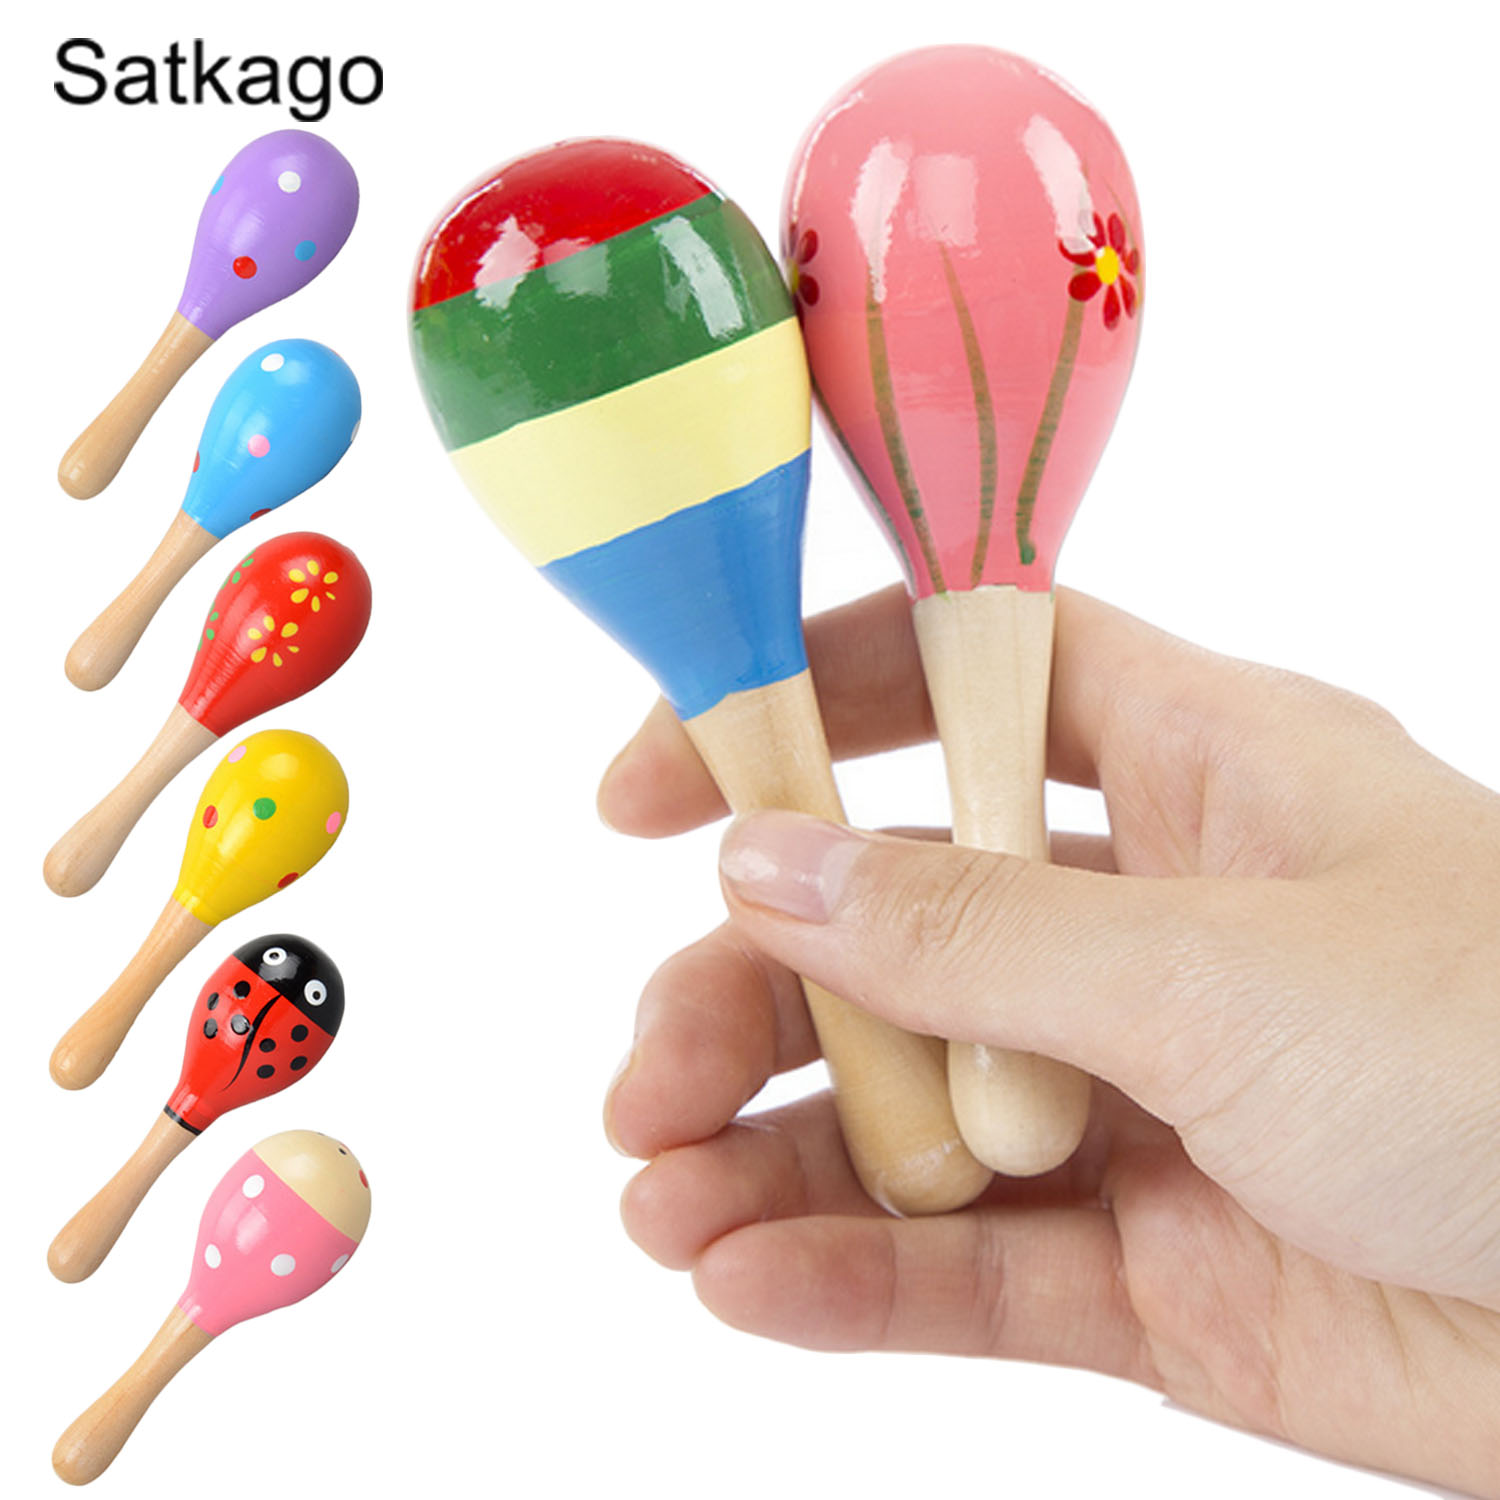 6 PCS Cute Colorful Wooden Sand Hammer Maracas Maraca Rattle Shaker Madera Toy Baby Child Sound Musical Toys Early Learning Toys